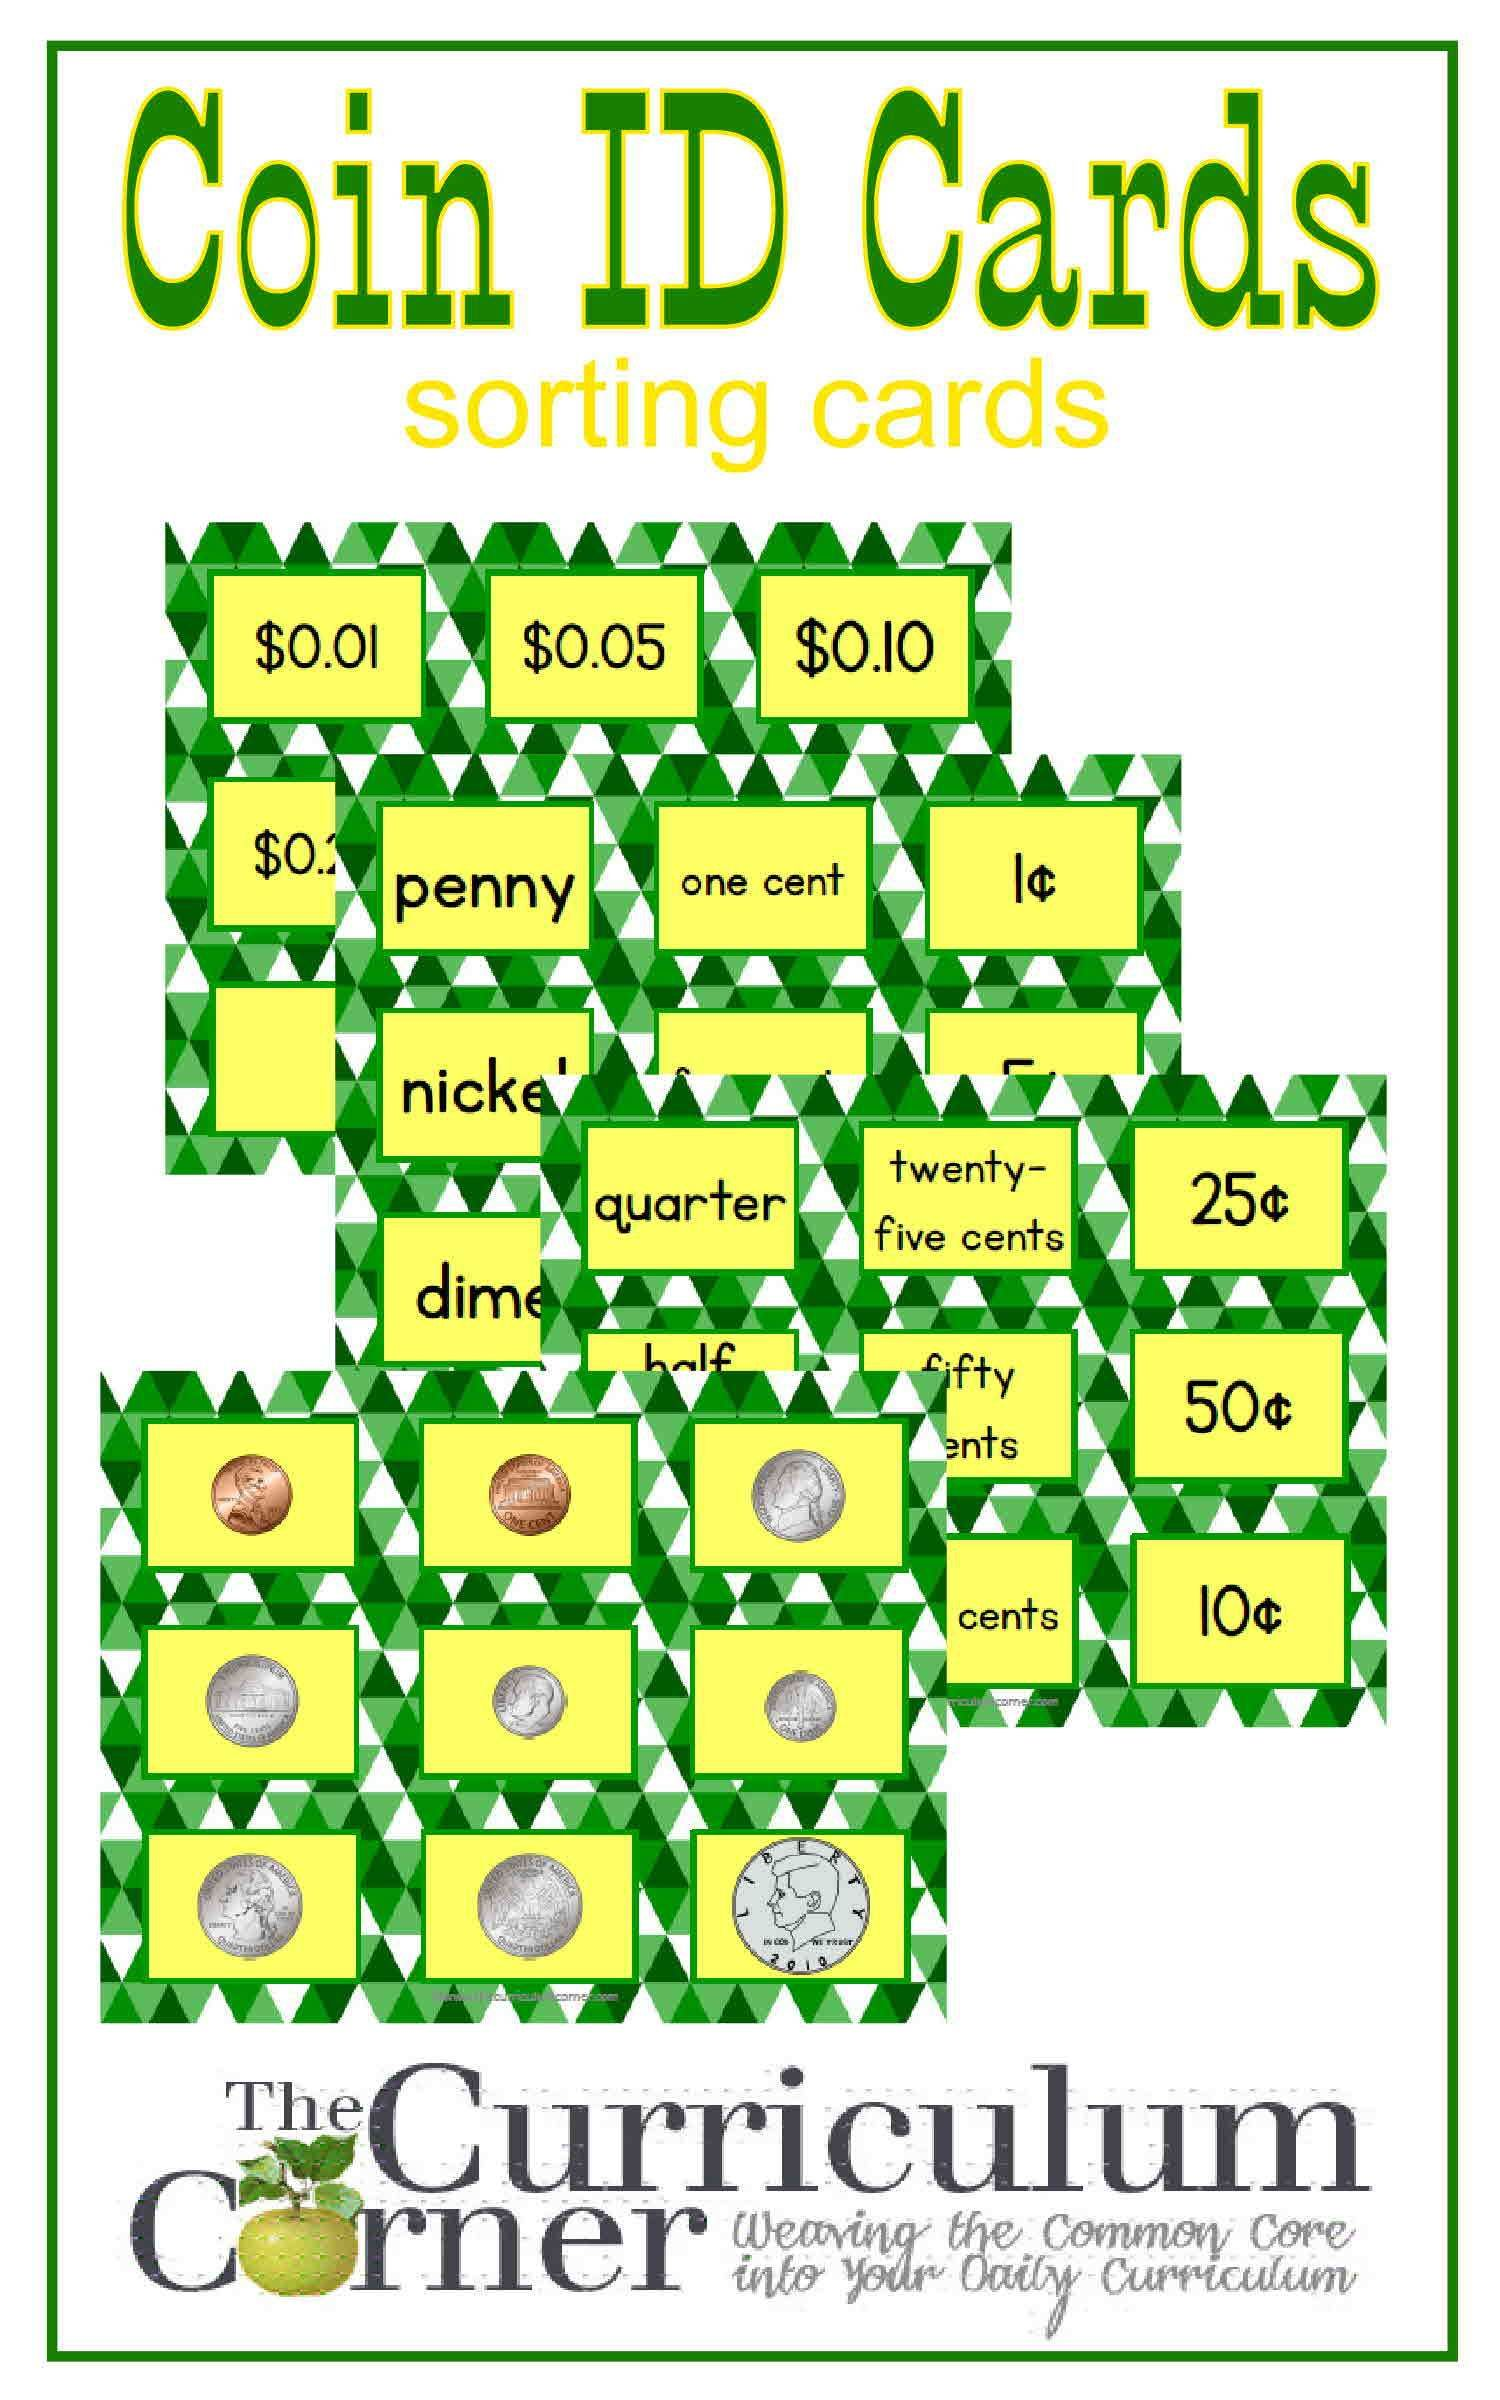 Coin Identification Sorting Cards Free From The Curriculum